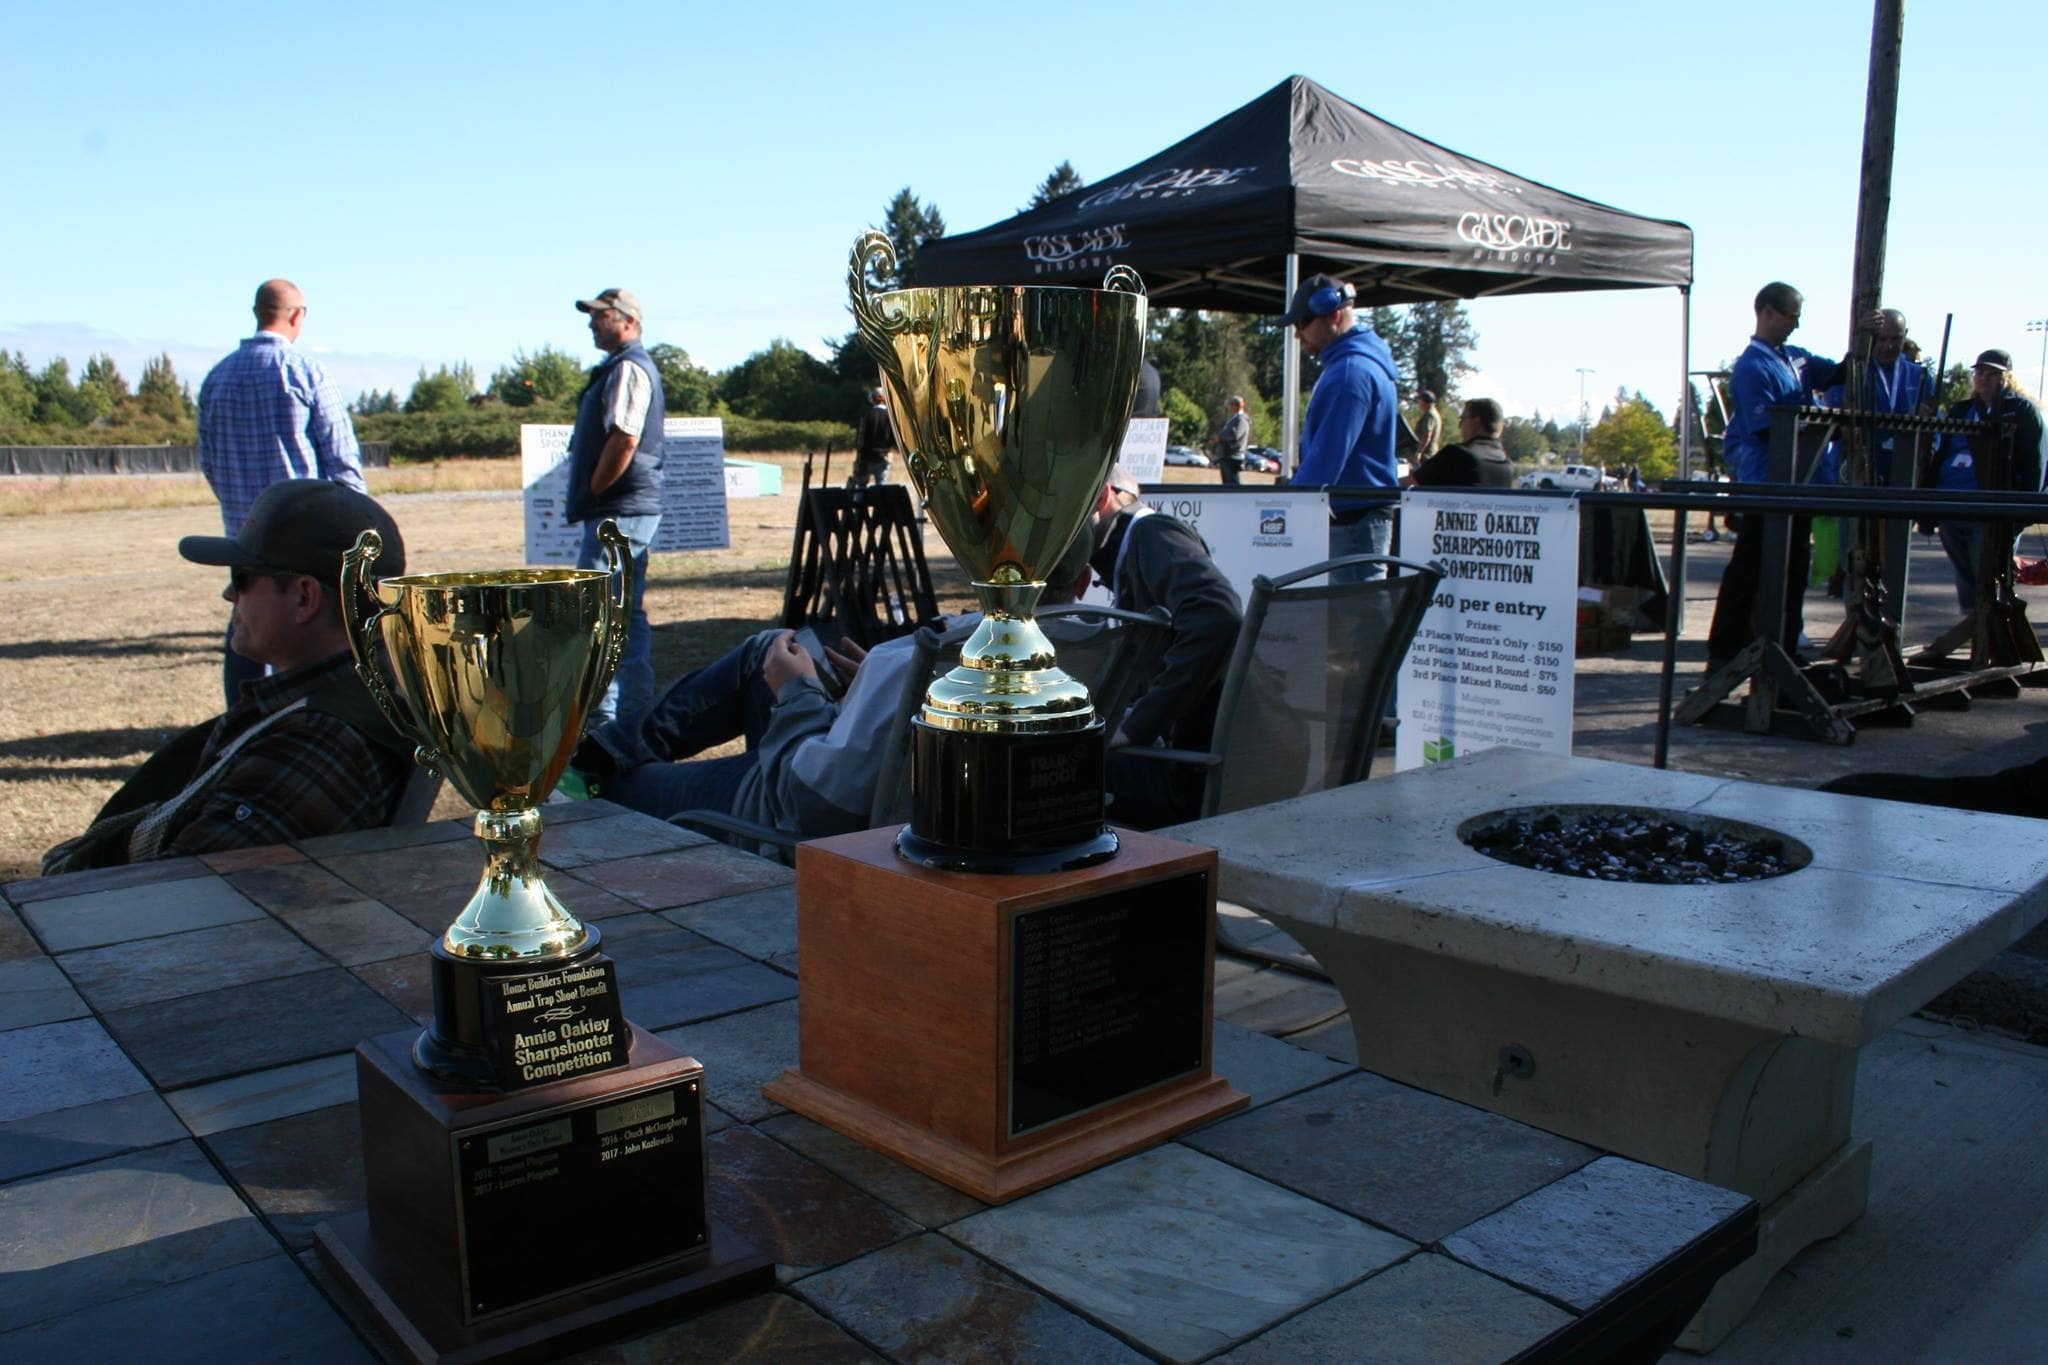 Builders Capital Sponsors the 14th Annual Portland Home Builders Foundation Trap Shoot